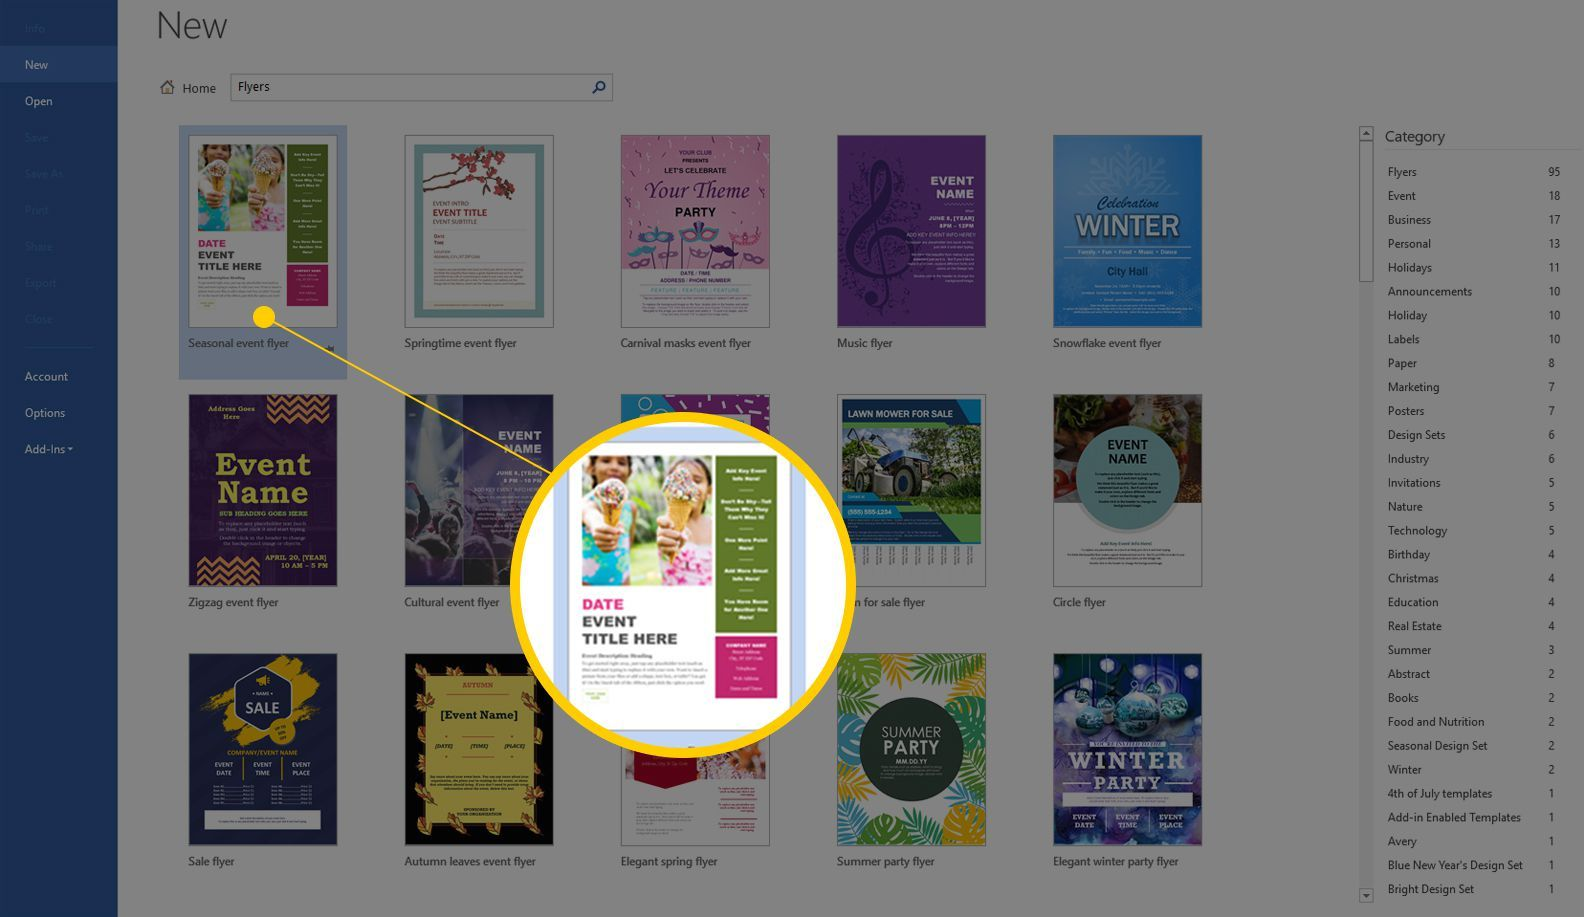 How To Make A Flyer On Word Inside Free Brochure Templates For Word 2010 In 2020 With Images Free Brochure Template Brochure Template Free Flyer Templates